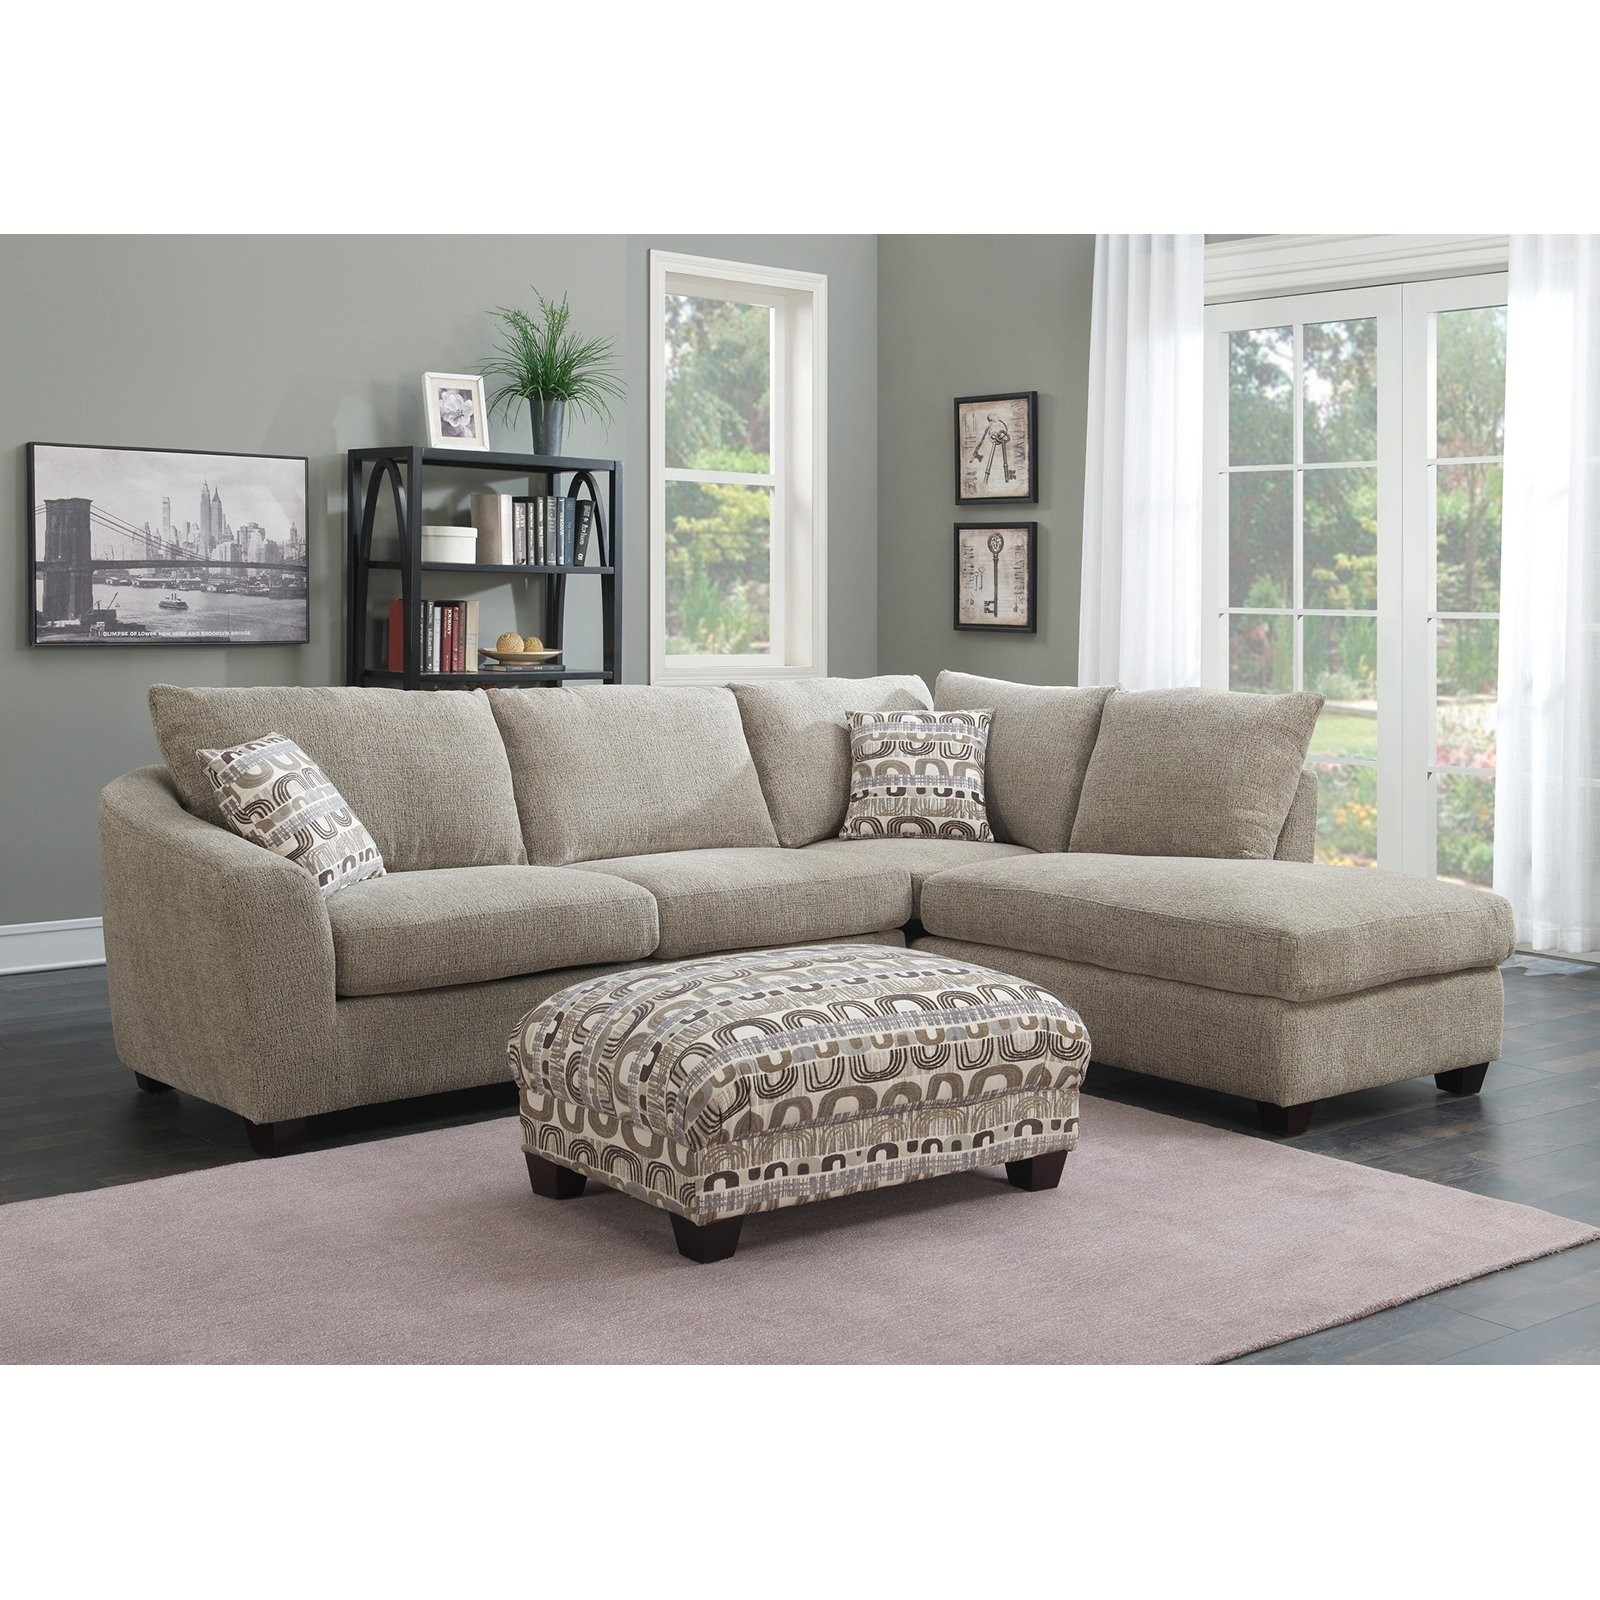 2 Piece Sectional With Chaise Avery W Laf Armless Living Spaces within Avery 2 Piece Sectionals With Laf Armless Chaise